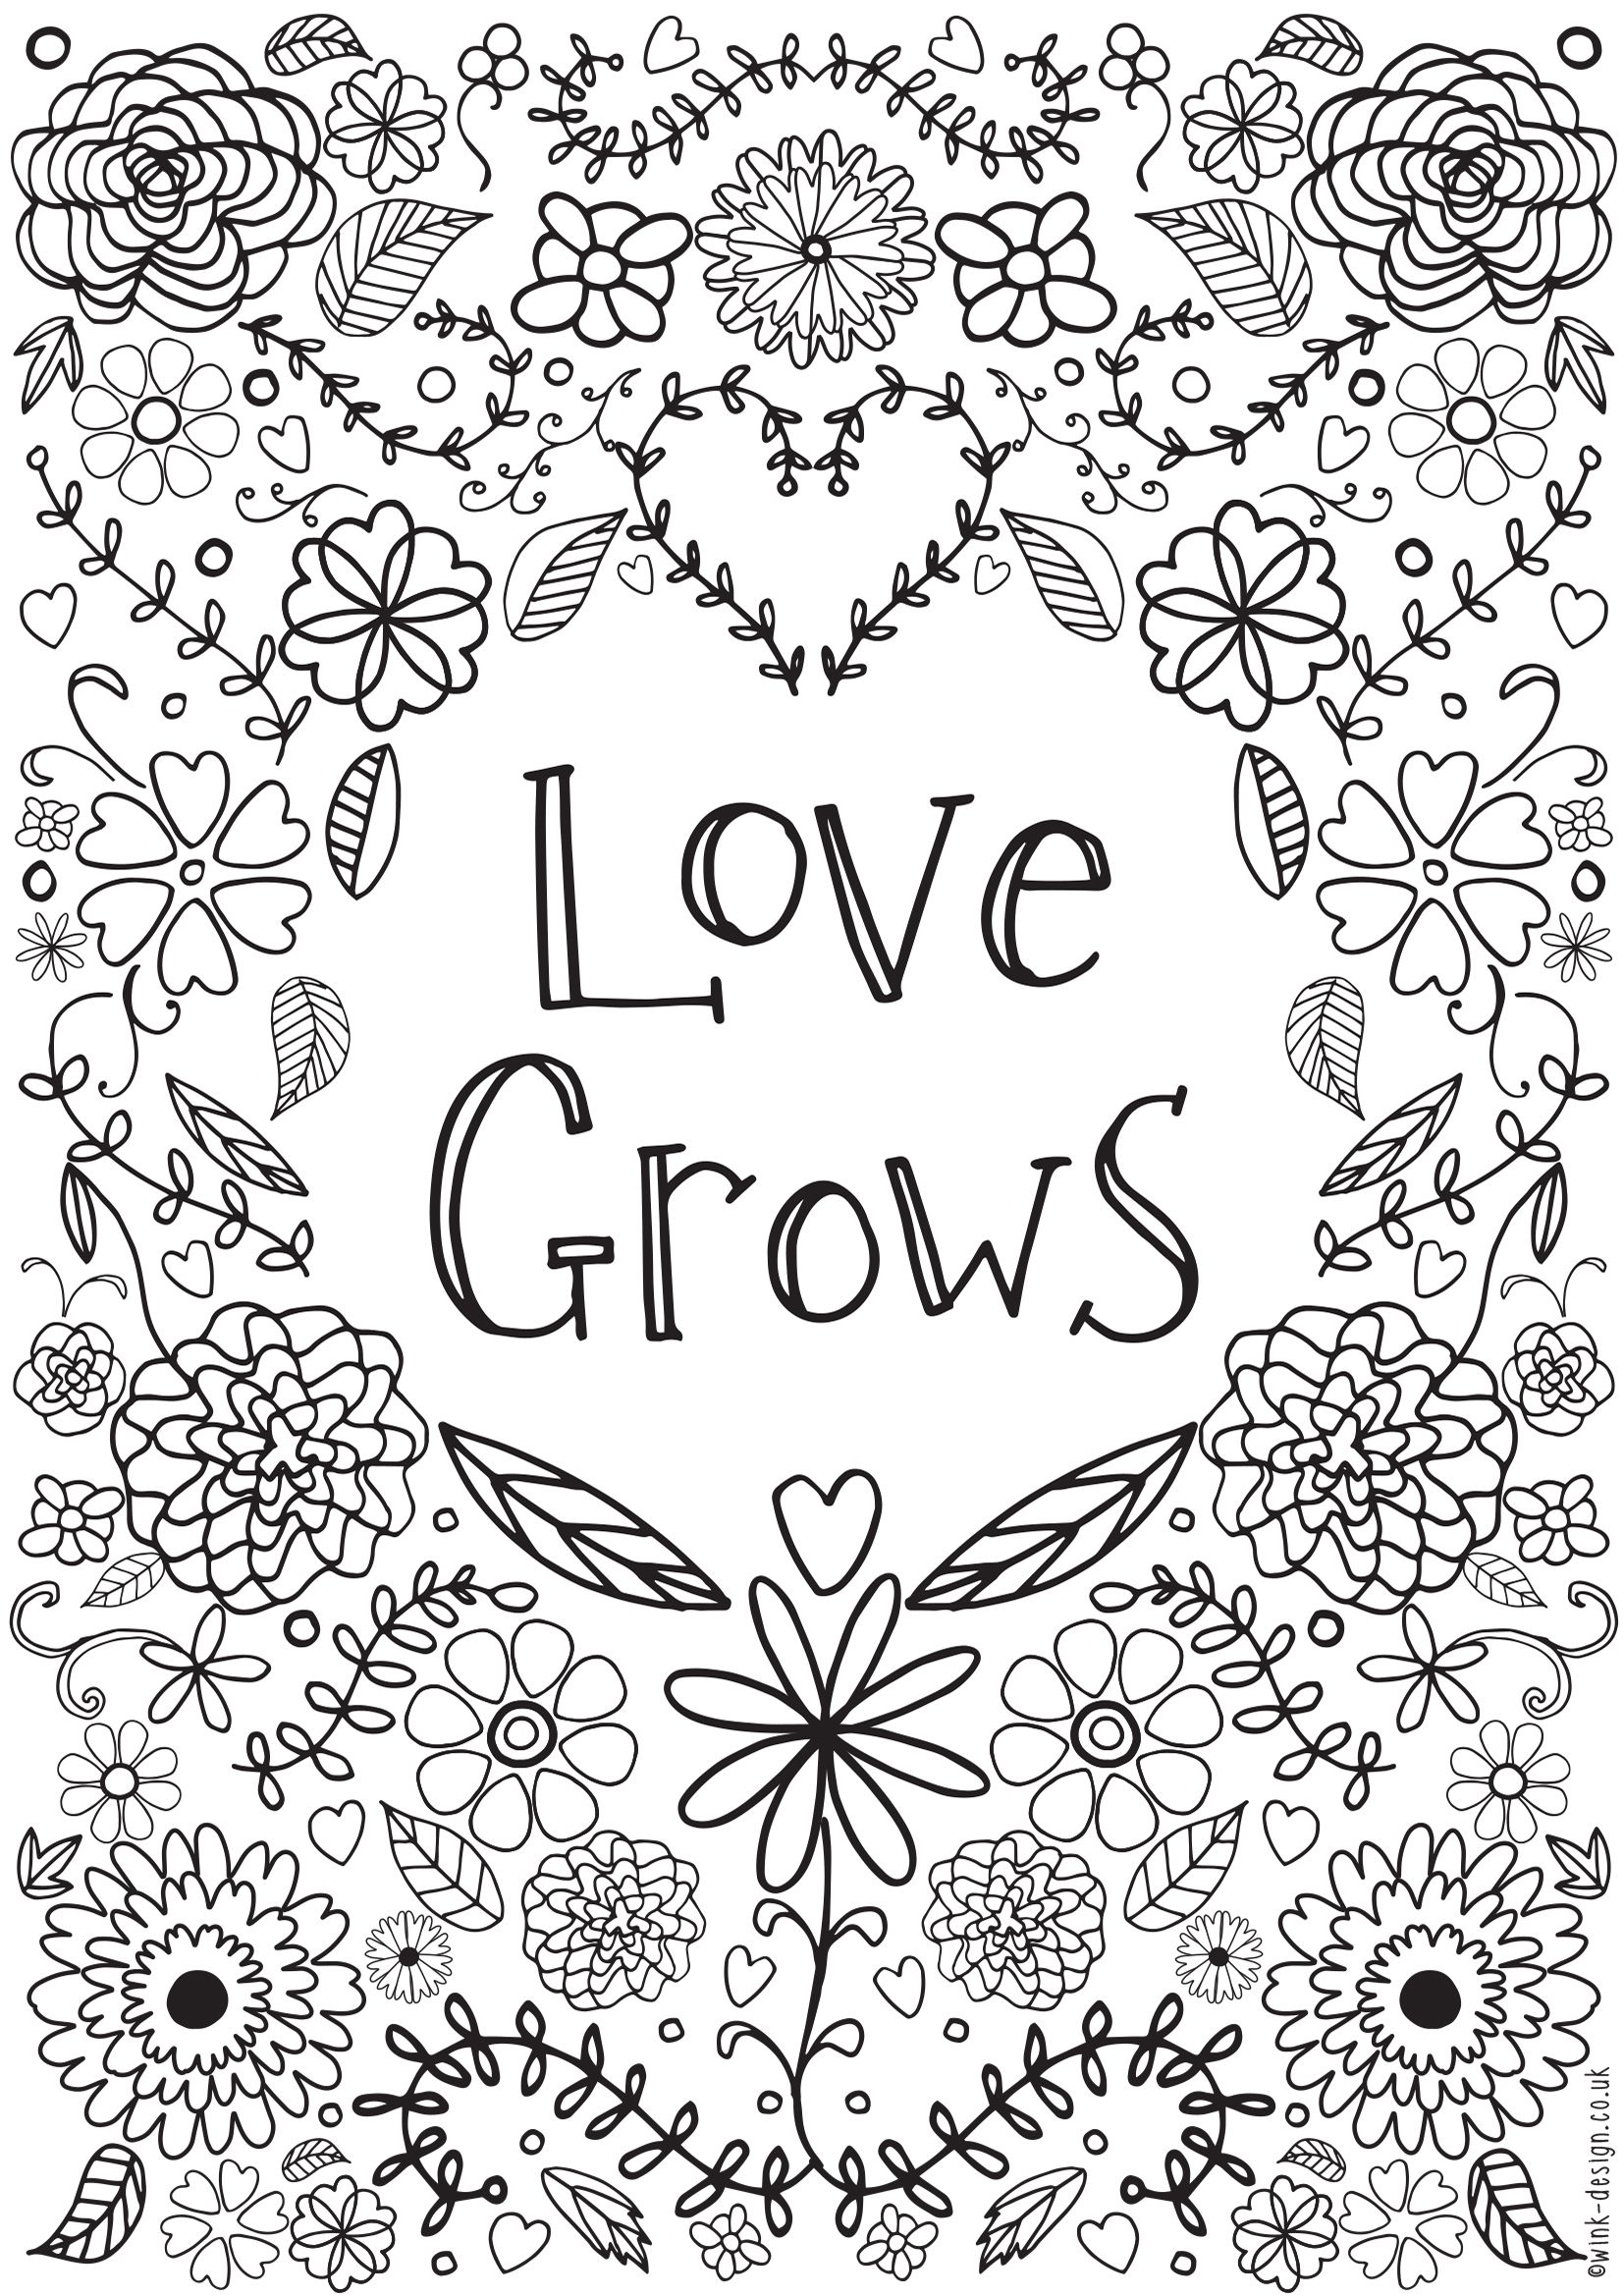 Coloring pages with quotes - Free Printable Adult Colouring Sheet With Inspirational Quote